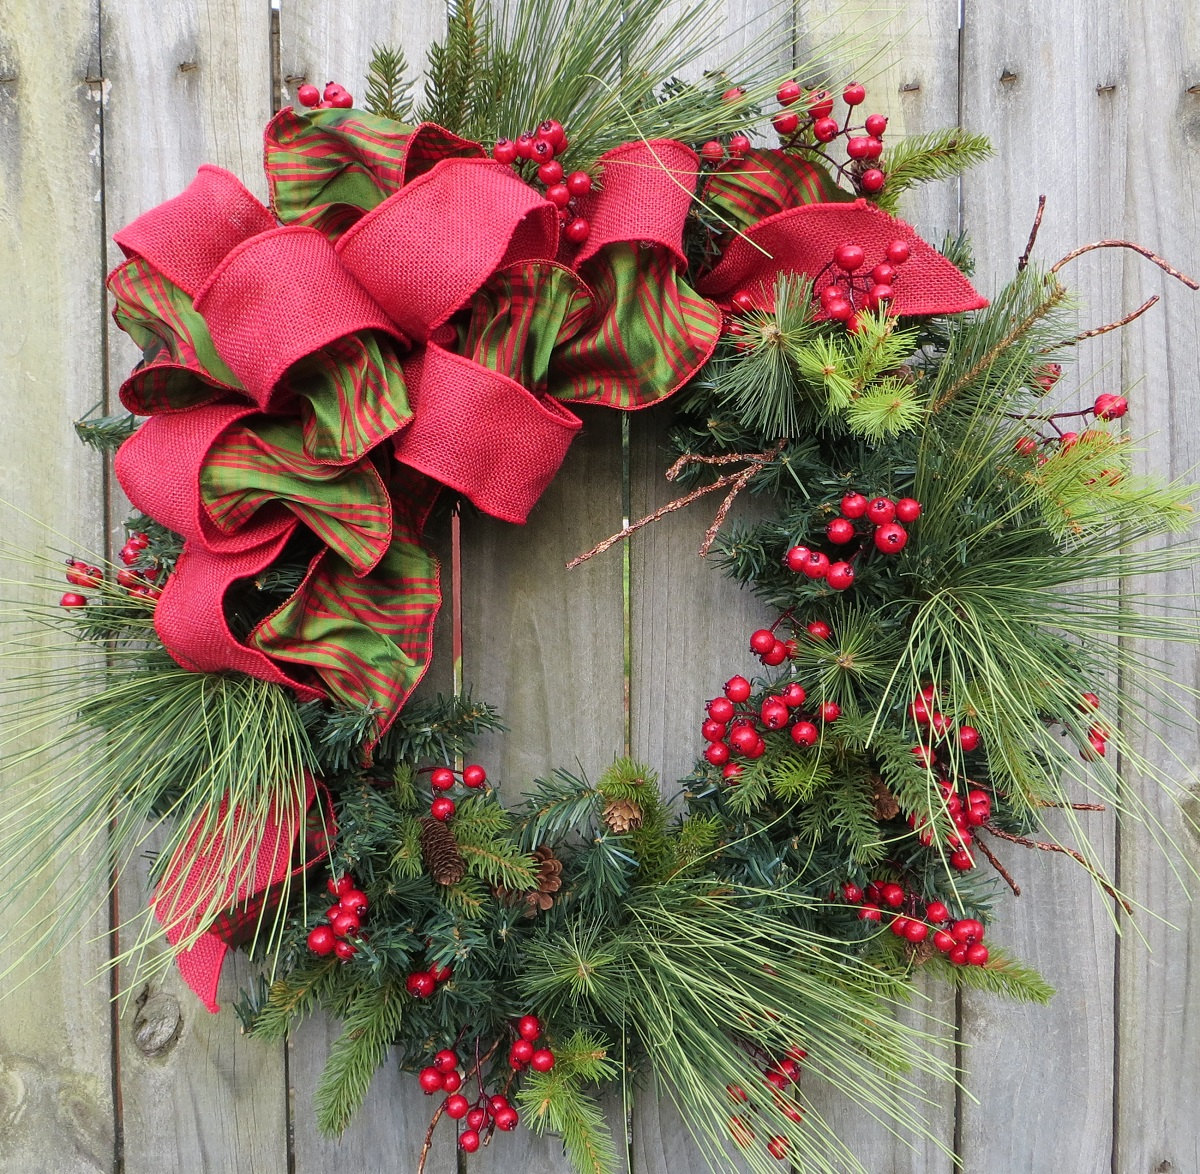 Incroyable Christmas Wreath Decorating Ideas